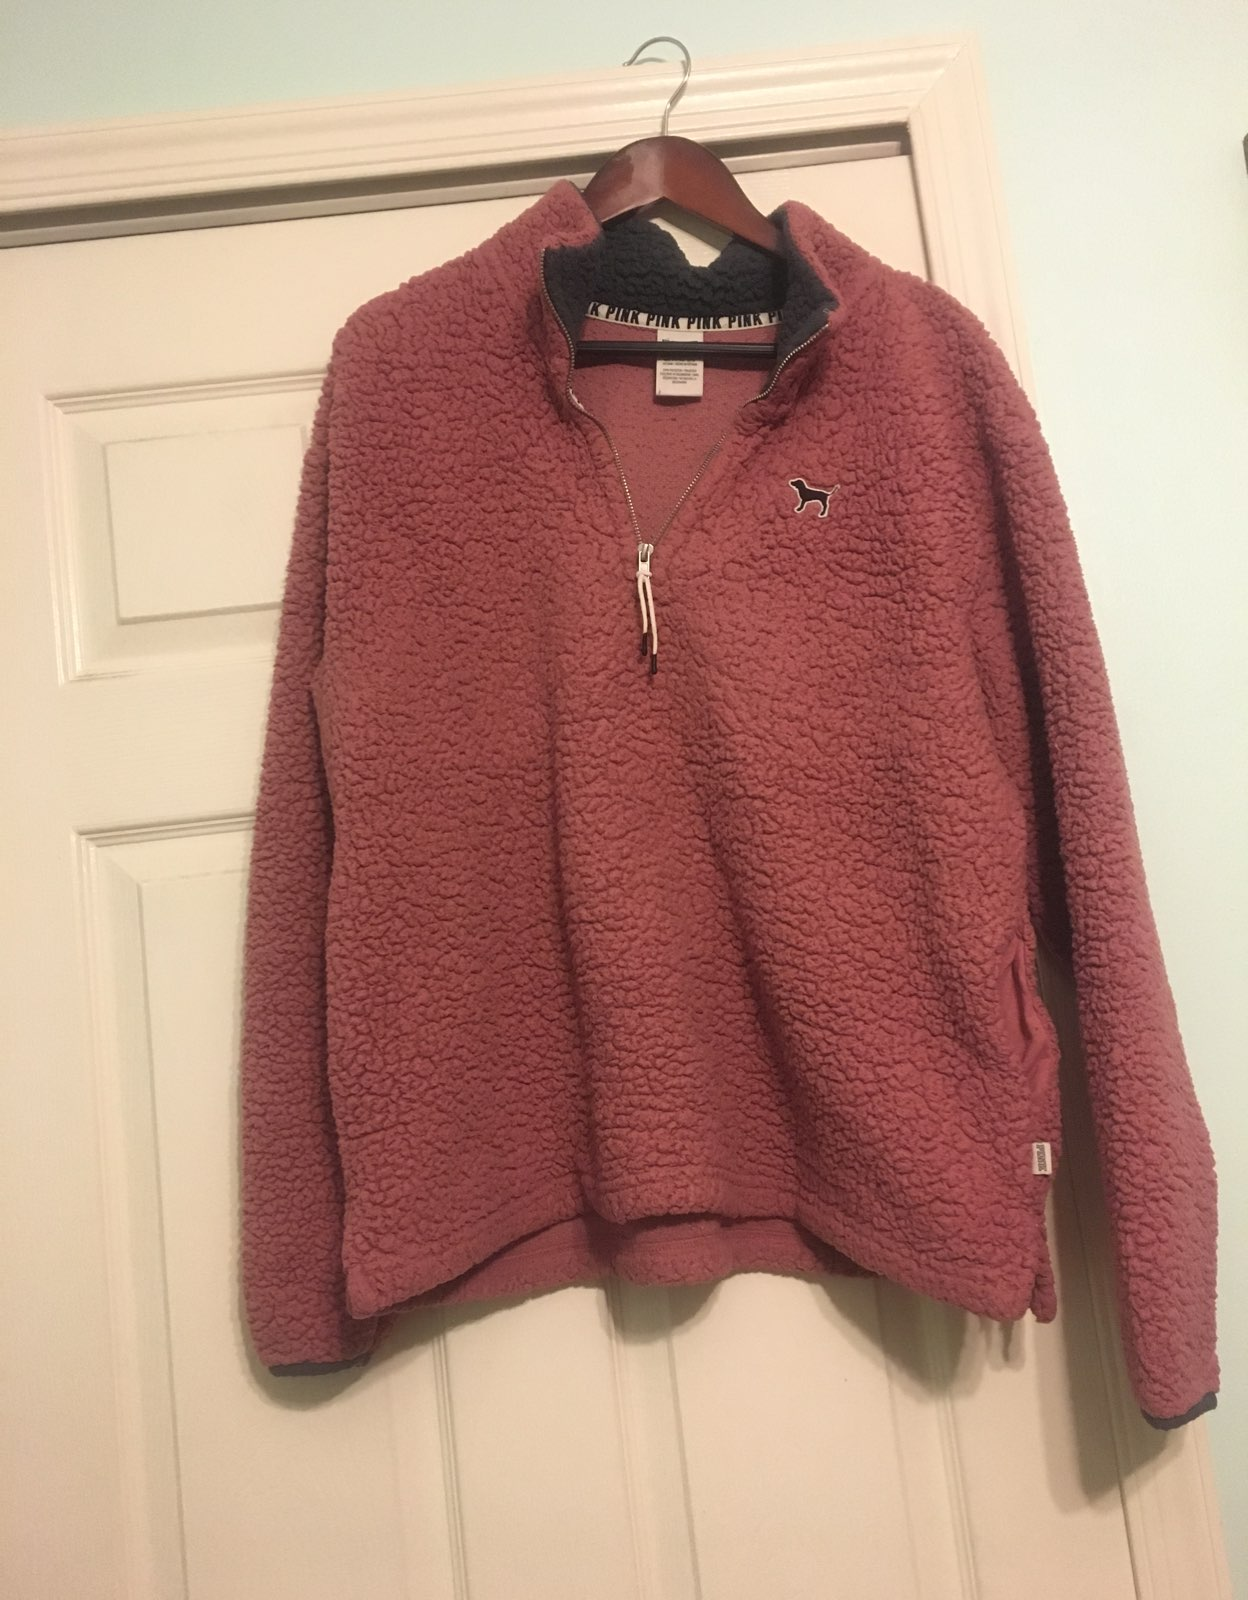 pink sherpa pullover - Mercari: BUY & SELL THINGS YOU LOVE